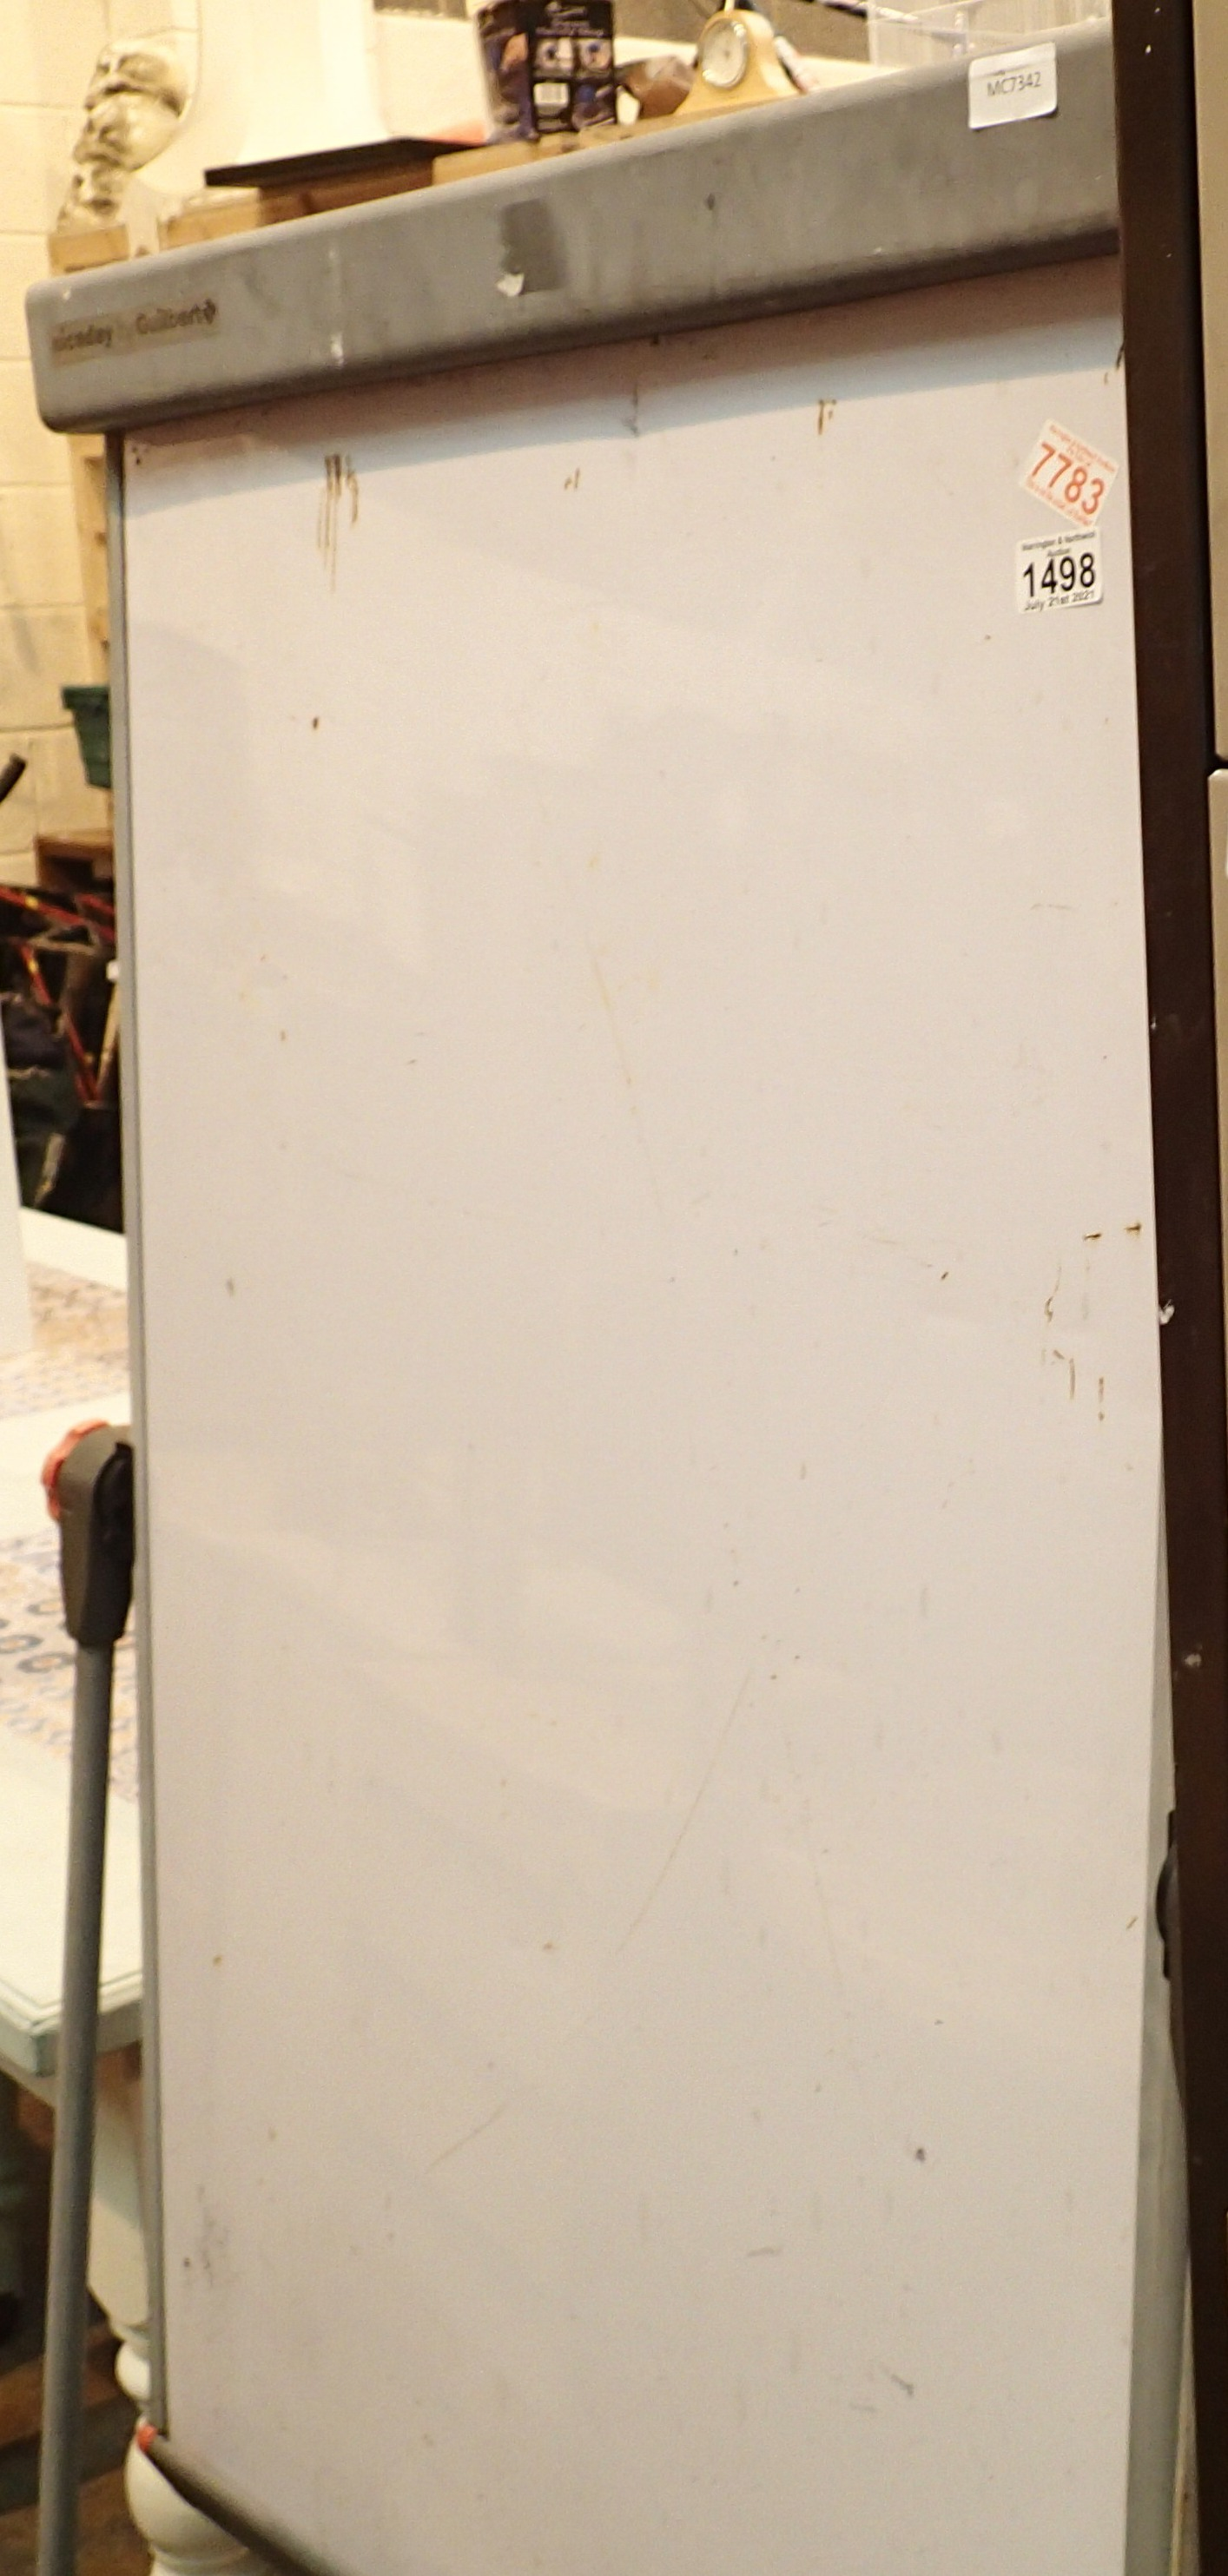 Large folding Gerbert white board 70 x 106 cm. Not available for in-house P&P, contact Paul O'Hea at